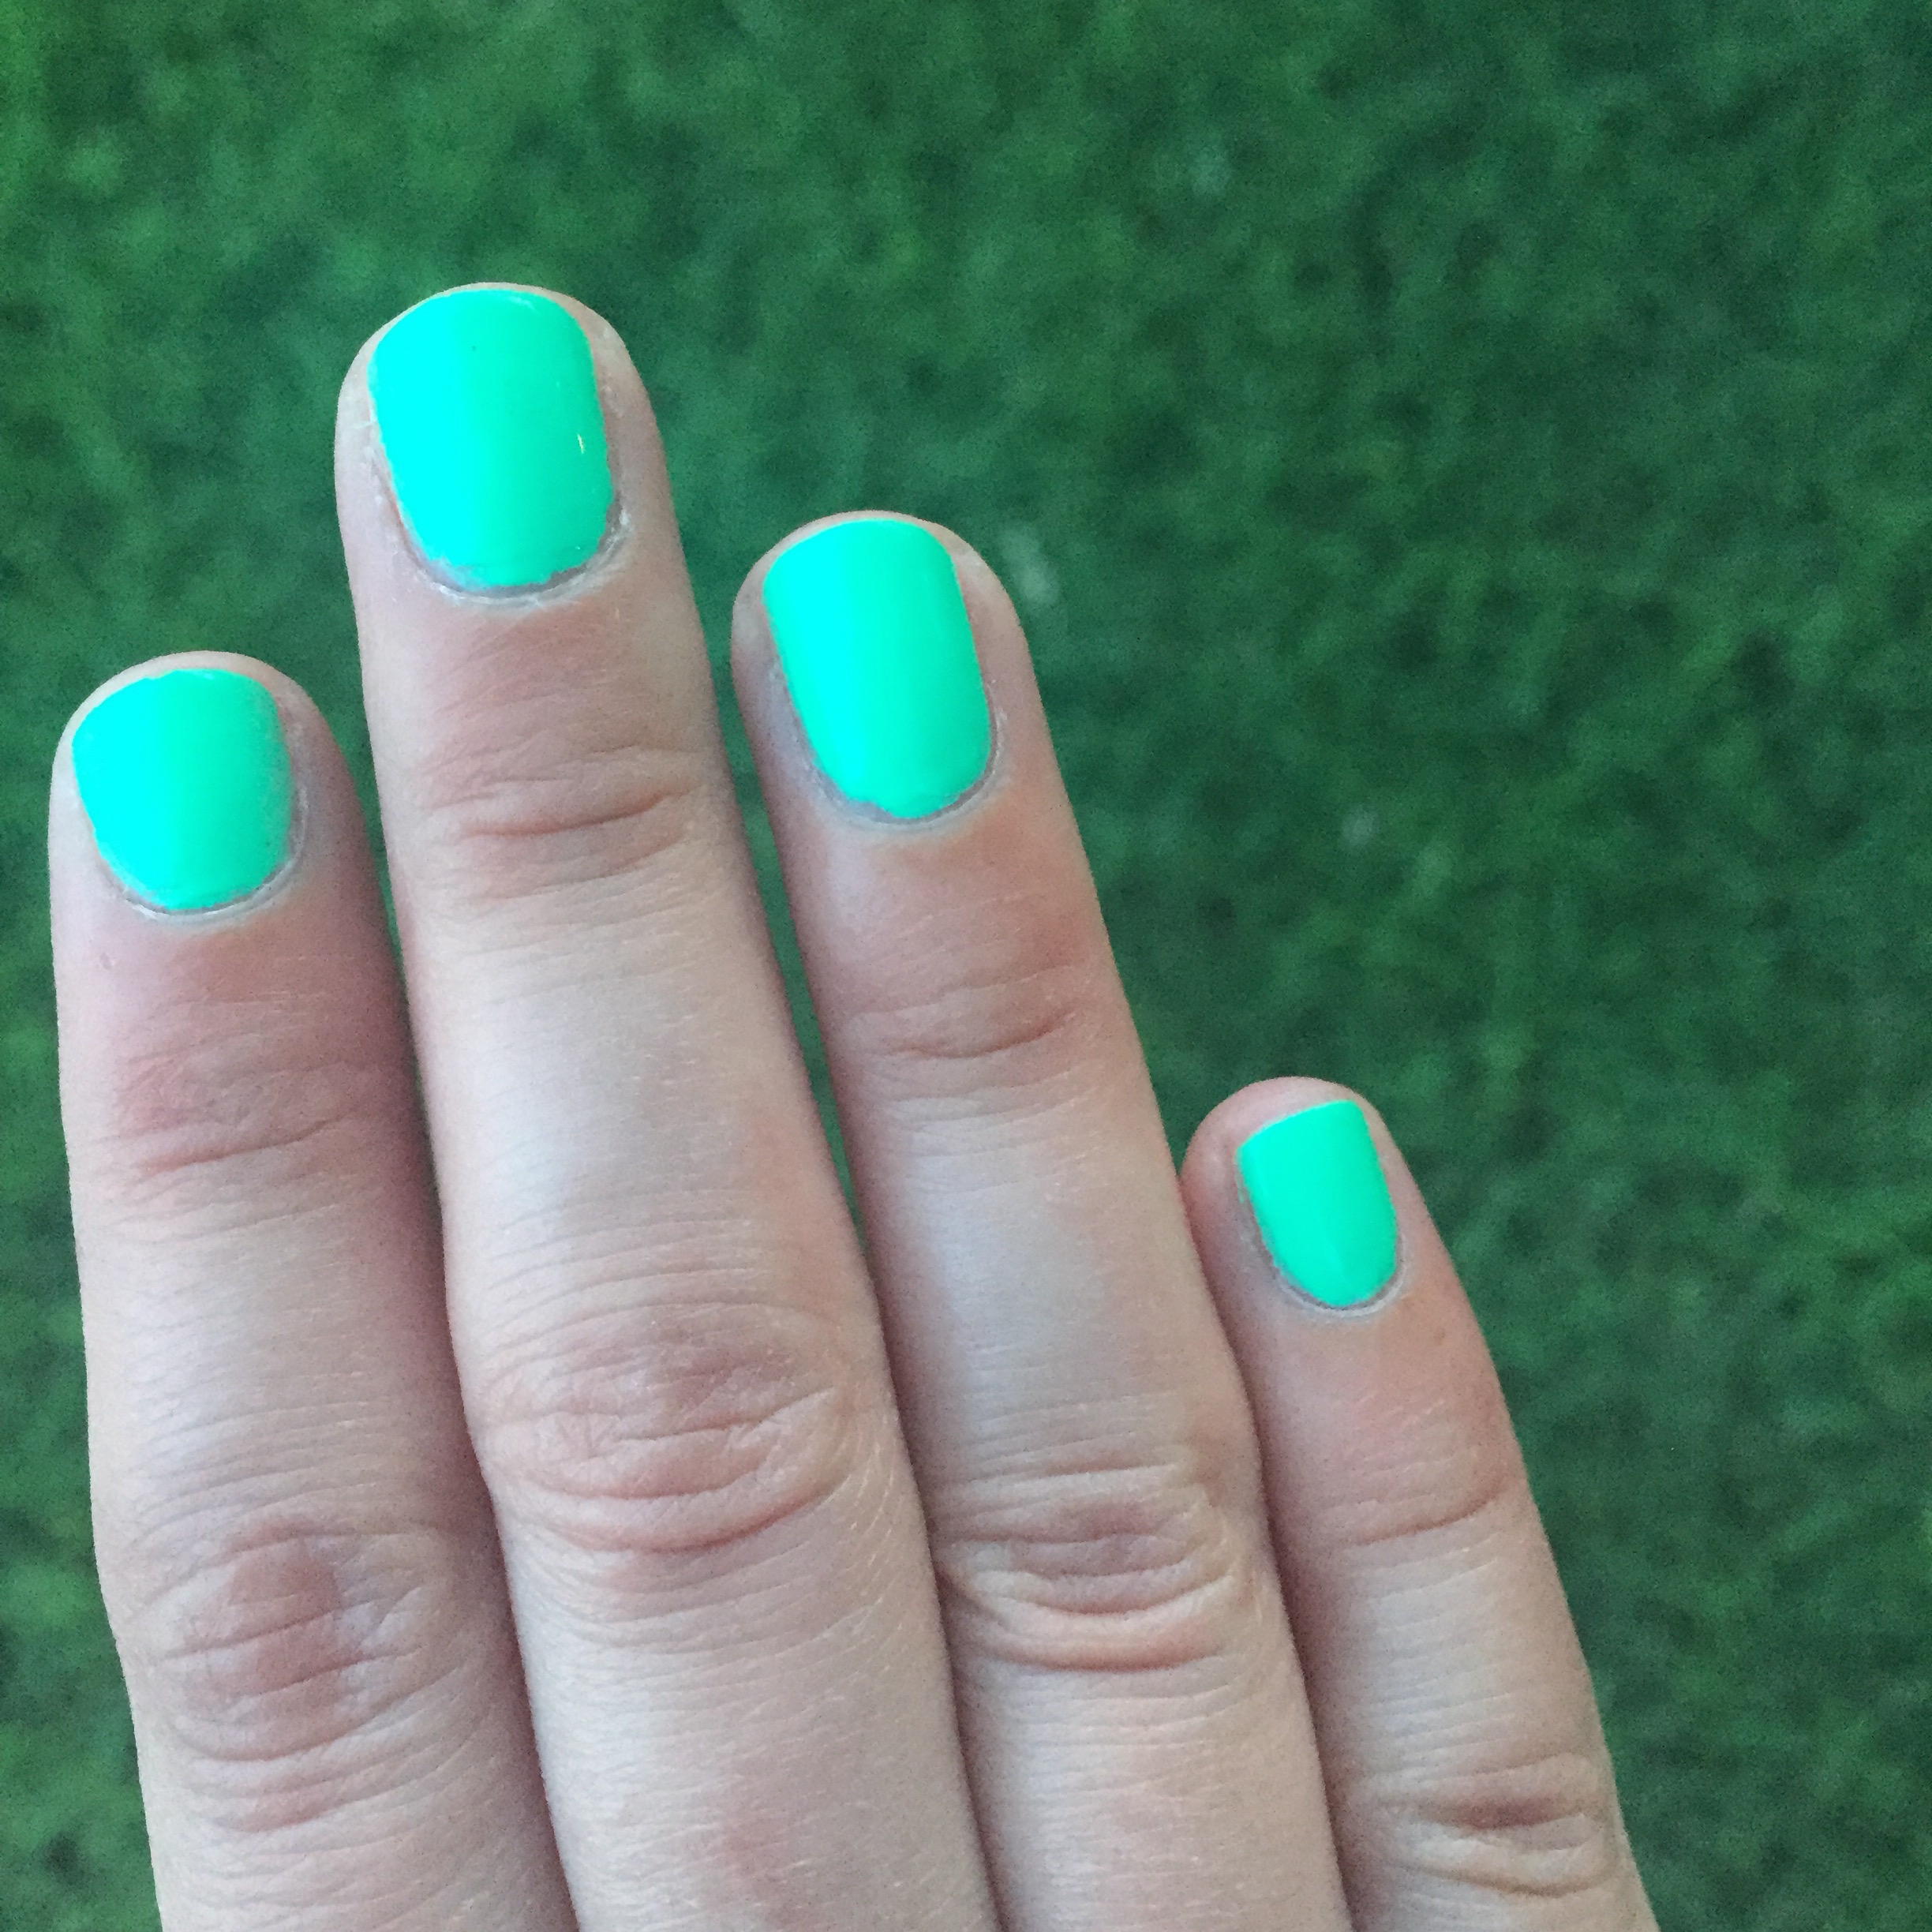 Neon Nail Polish: Age of Aquarius by Color Club